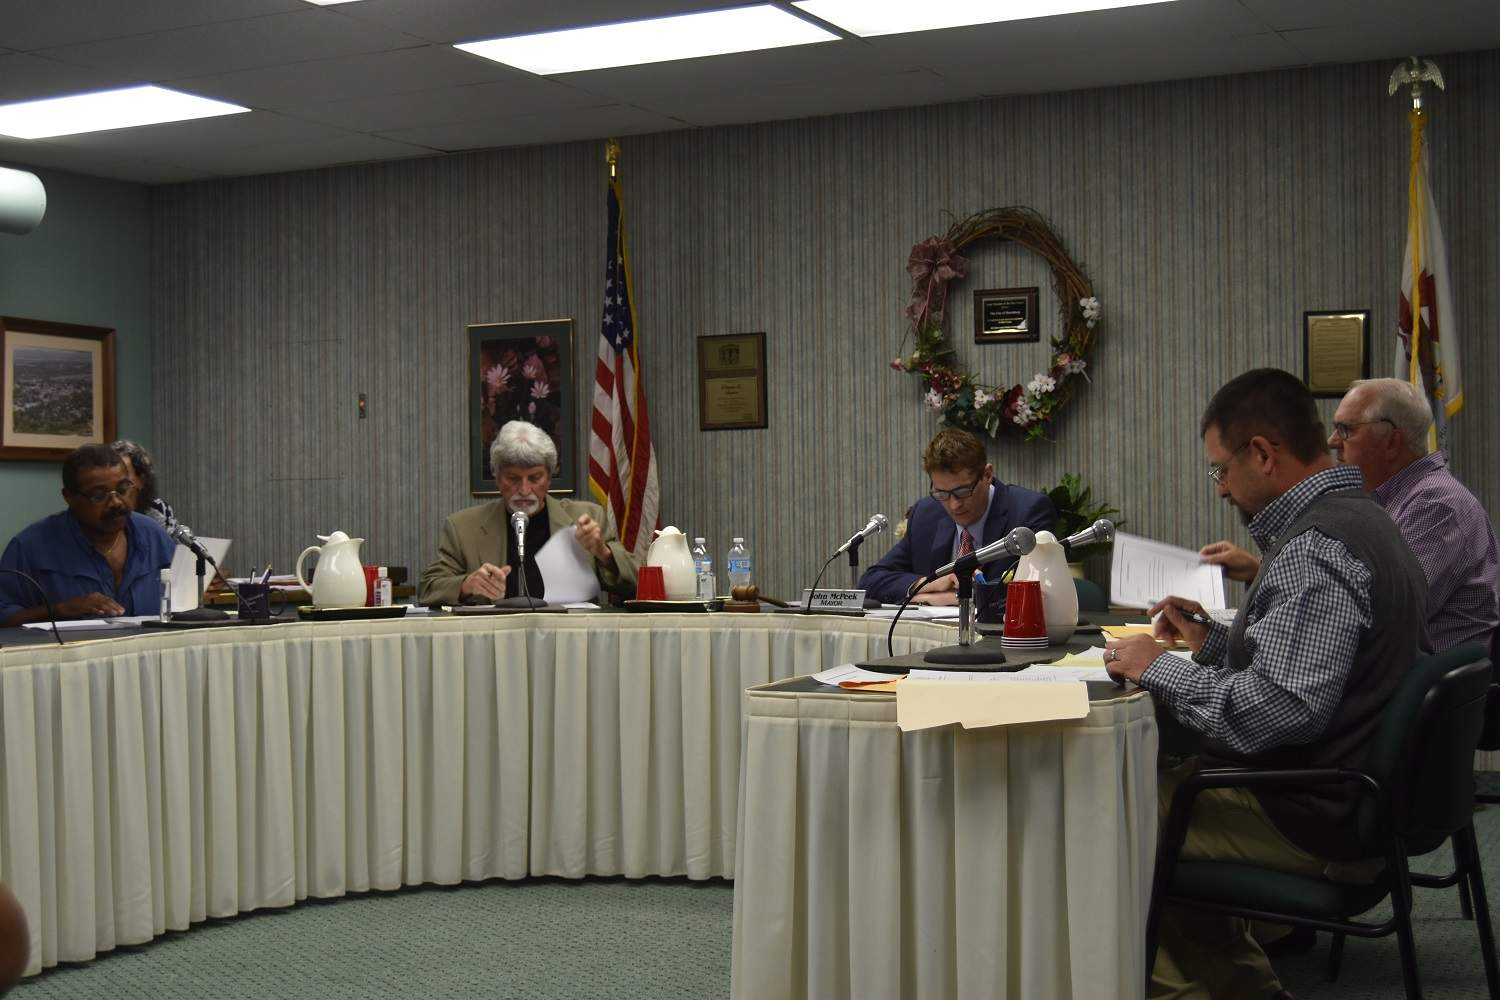 From left, Harrisburg's new city council are Raymond Johnson, Roger Angelly, Mayor John McPeek, Ron Morse and Raymond Gunning (at right end of table).